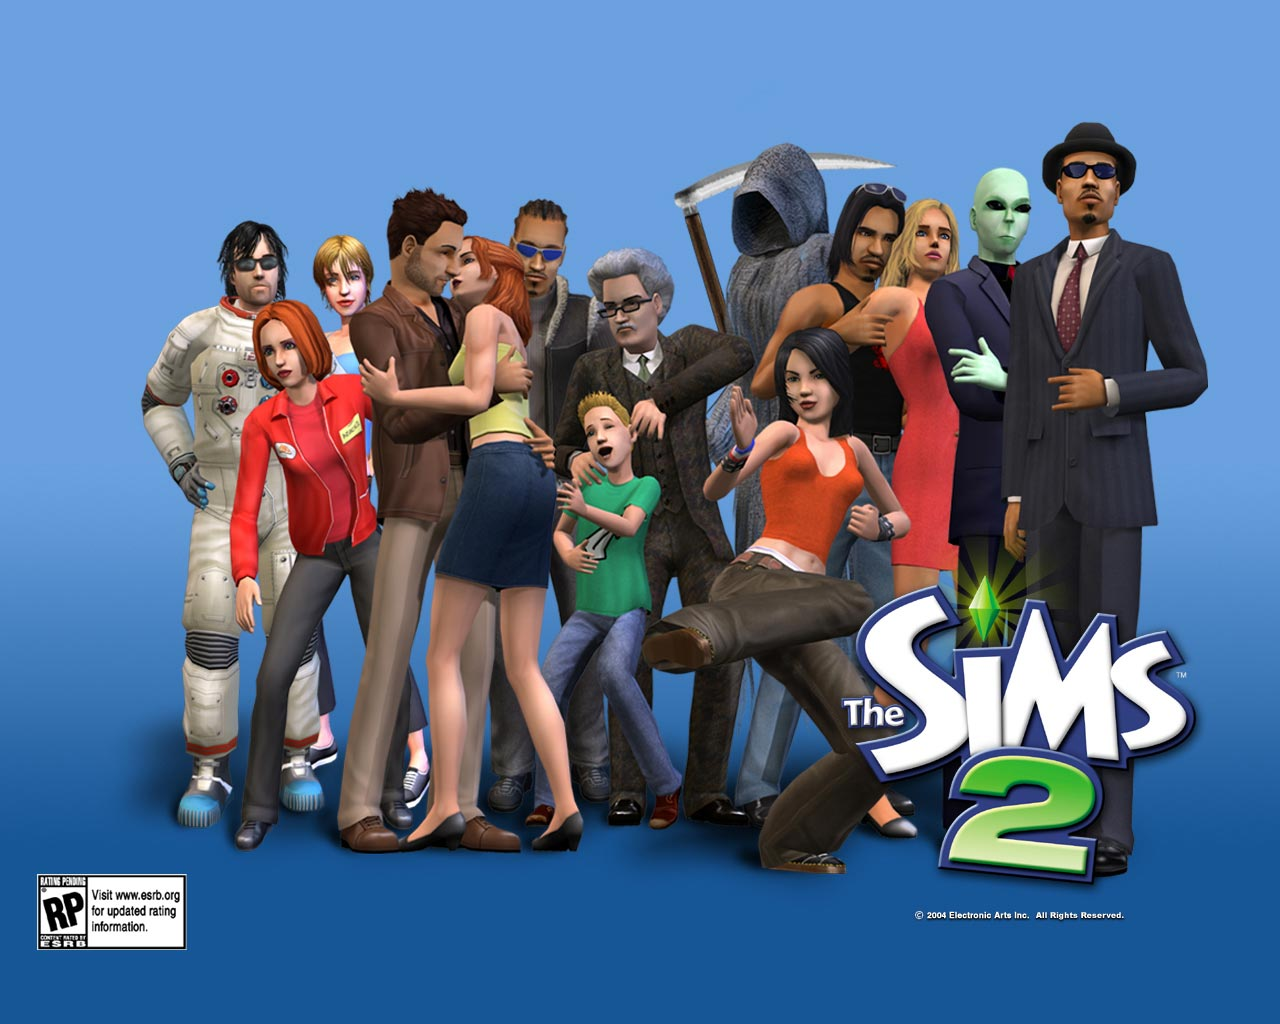 The Sims 2 Download - Old Games Download